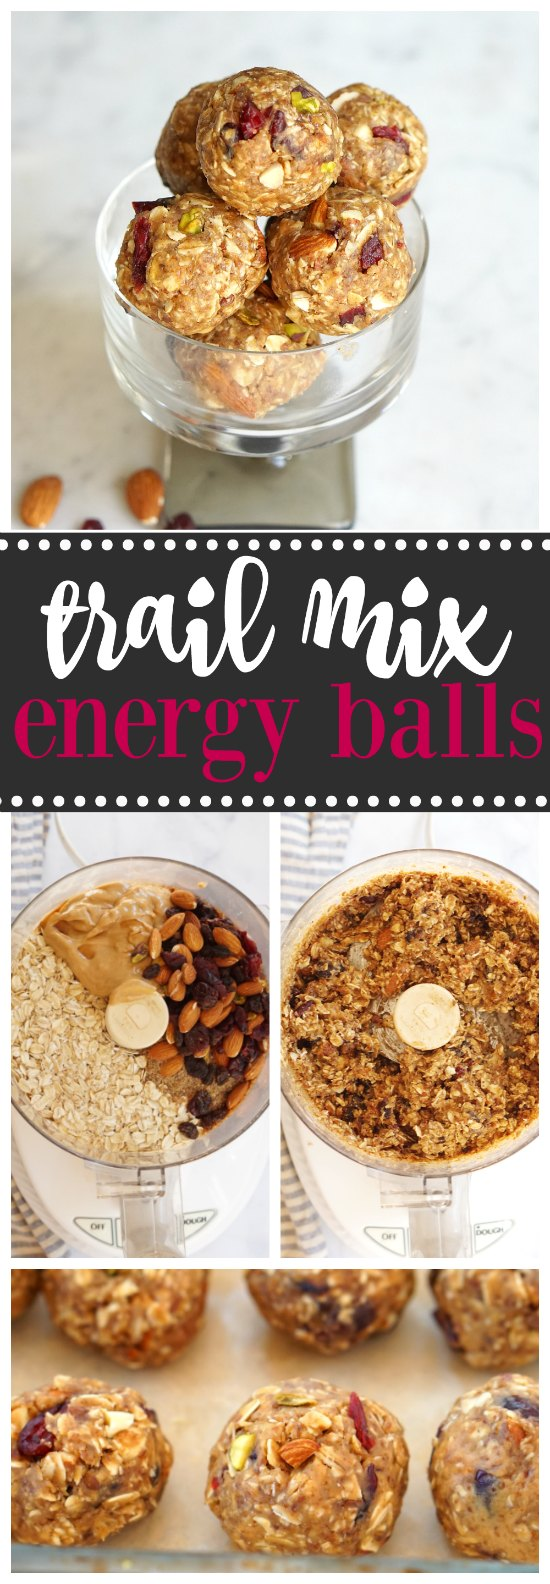 These no-bake trail mix peanut butter energy balls are easy to make and absolutely delicious!